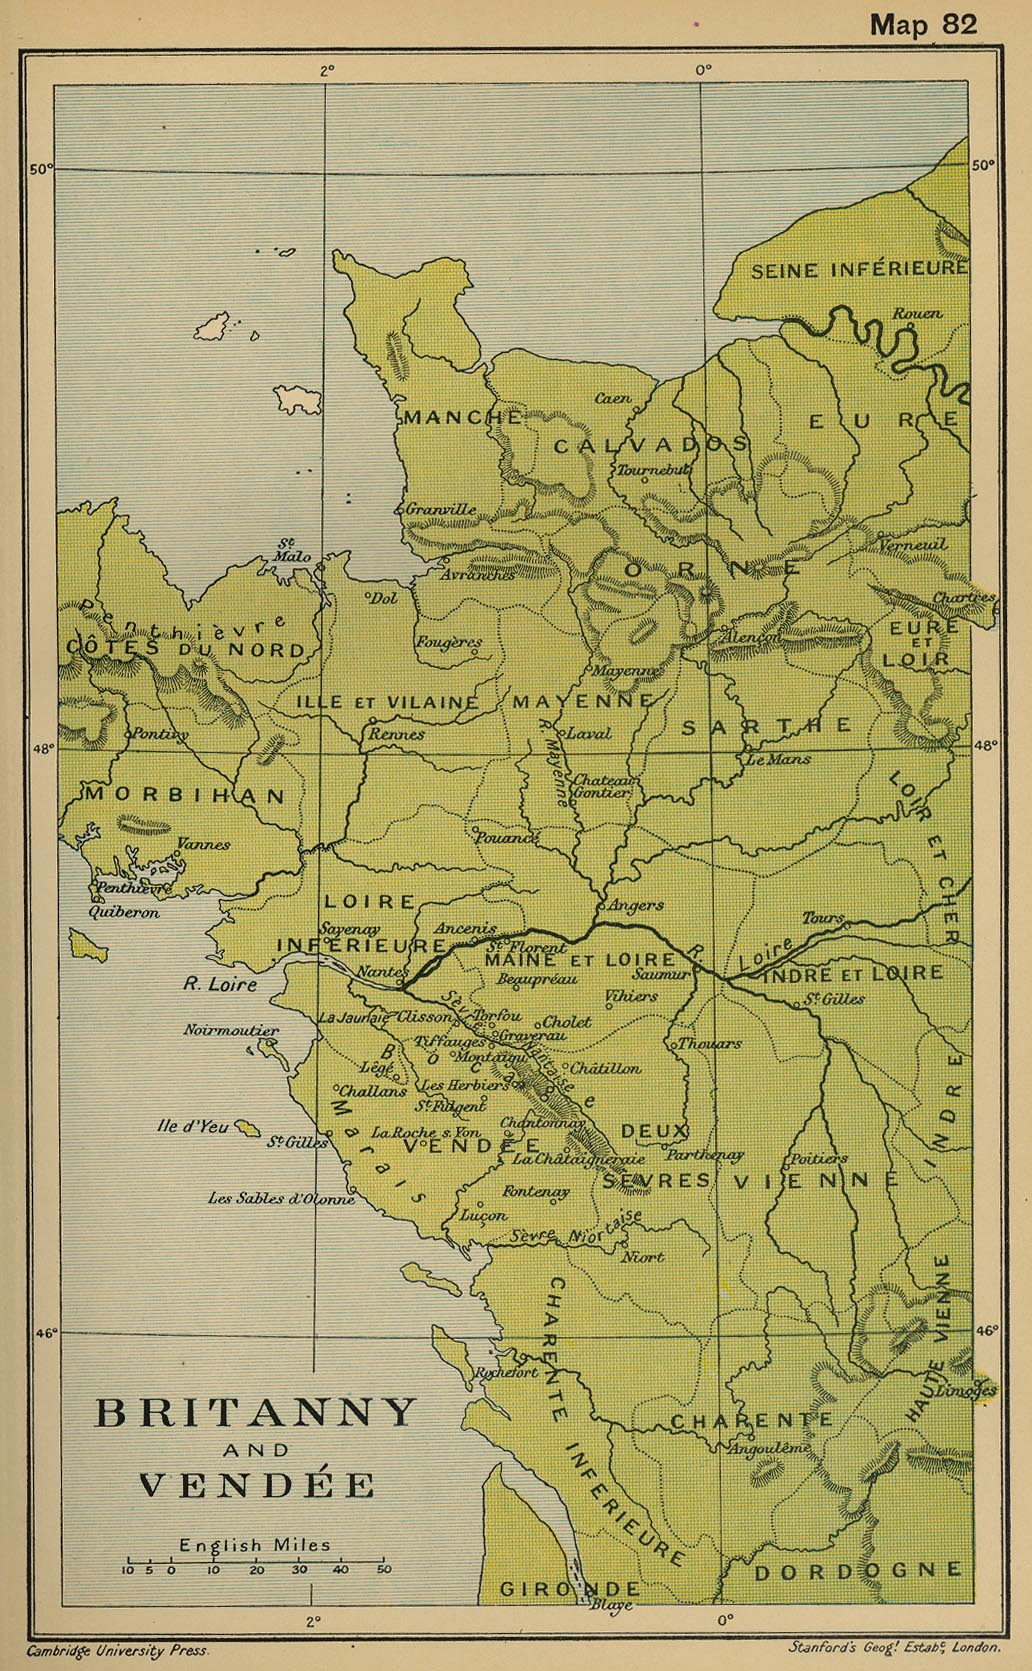 Map of Britanny and Vendee 1793